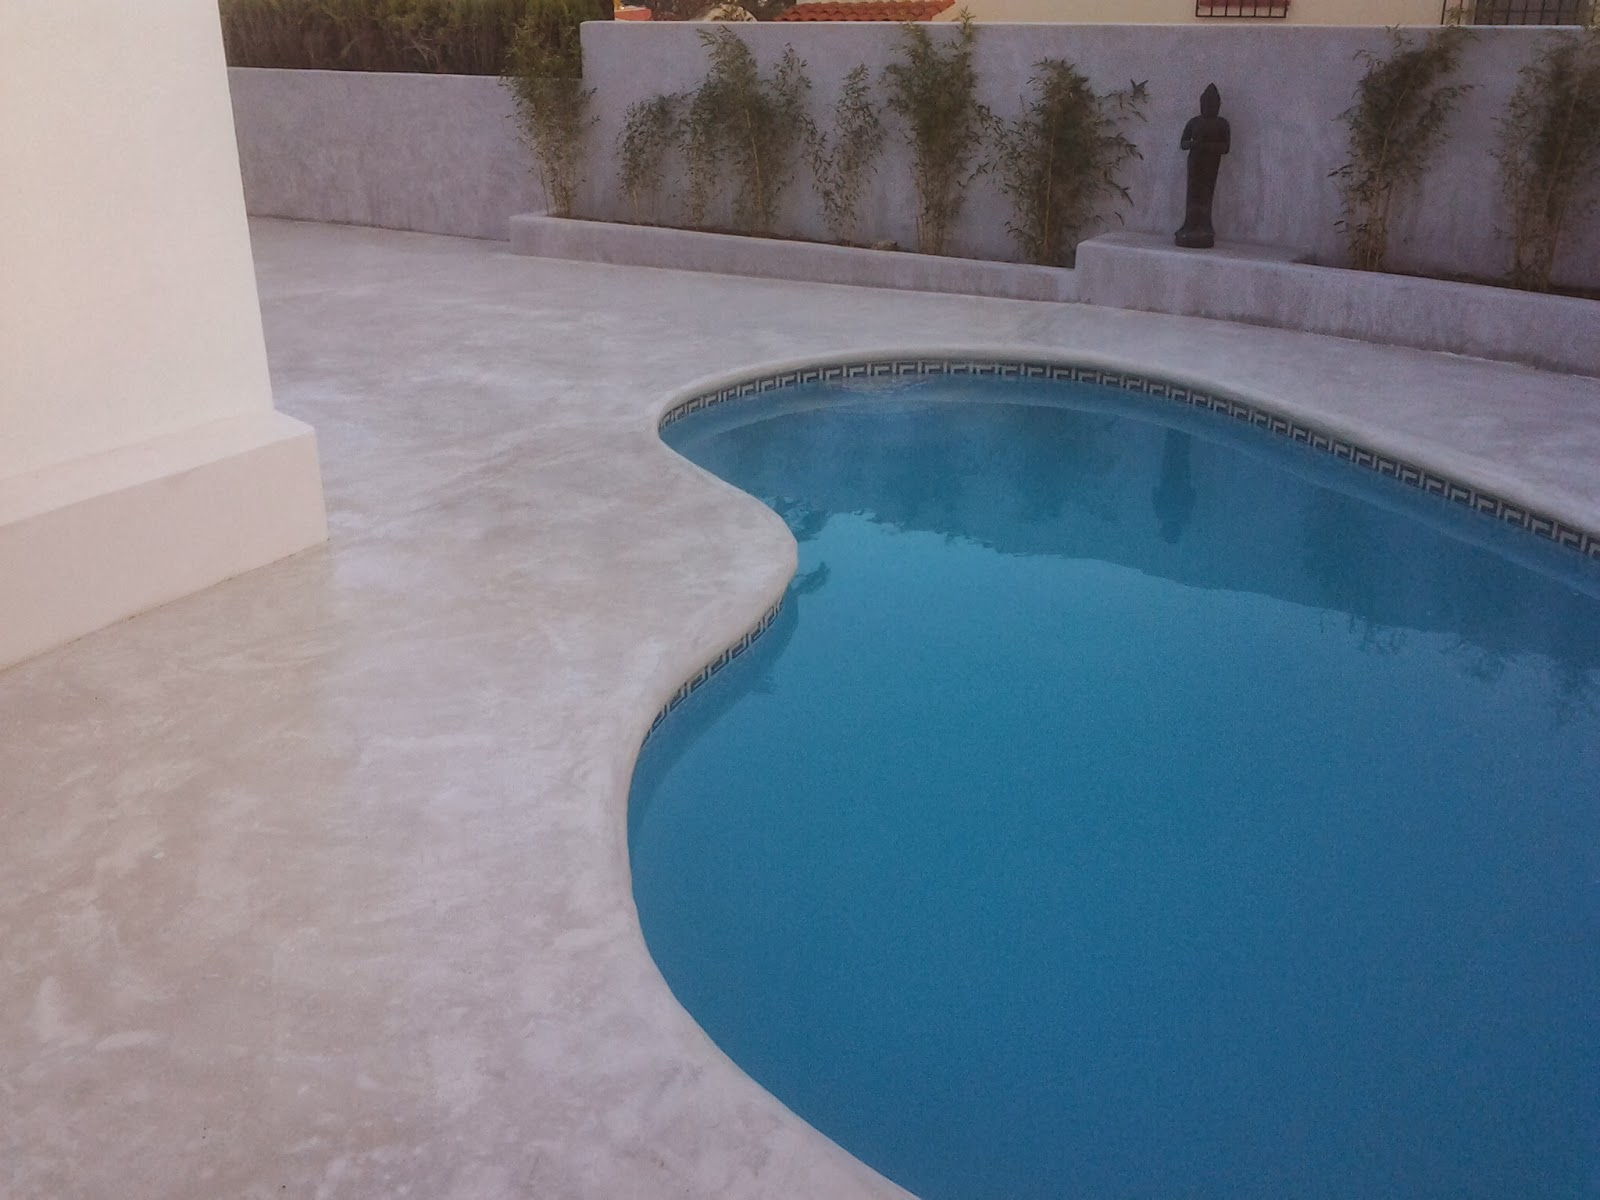 Piscina con pavimento continuo de hormig n en color blanco for Borde piscina hormigon